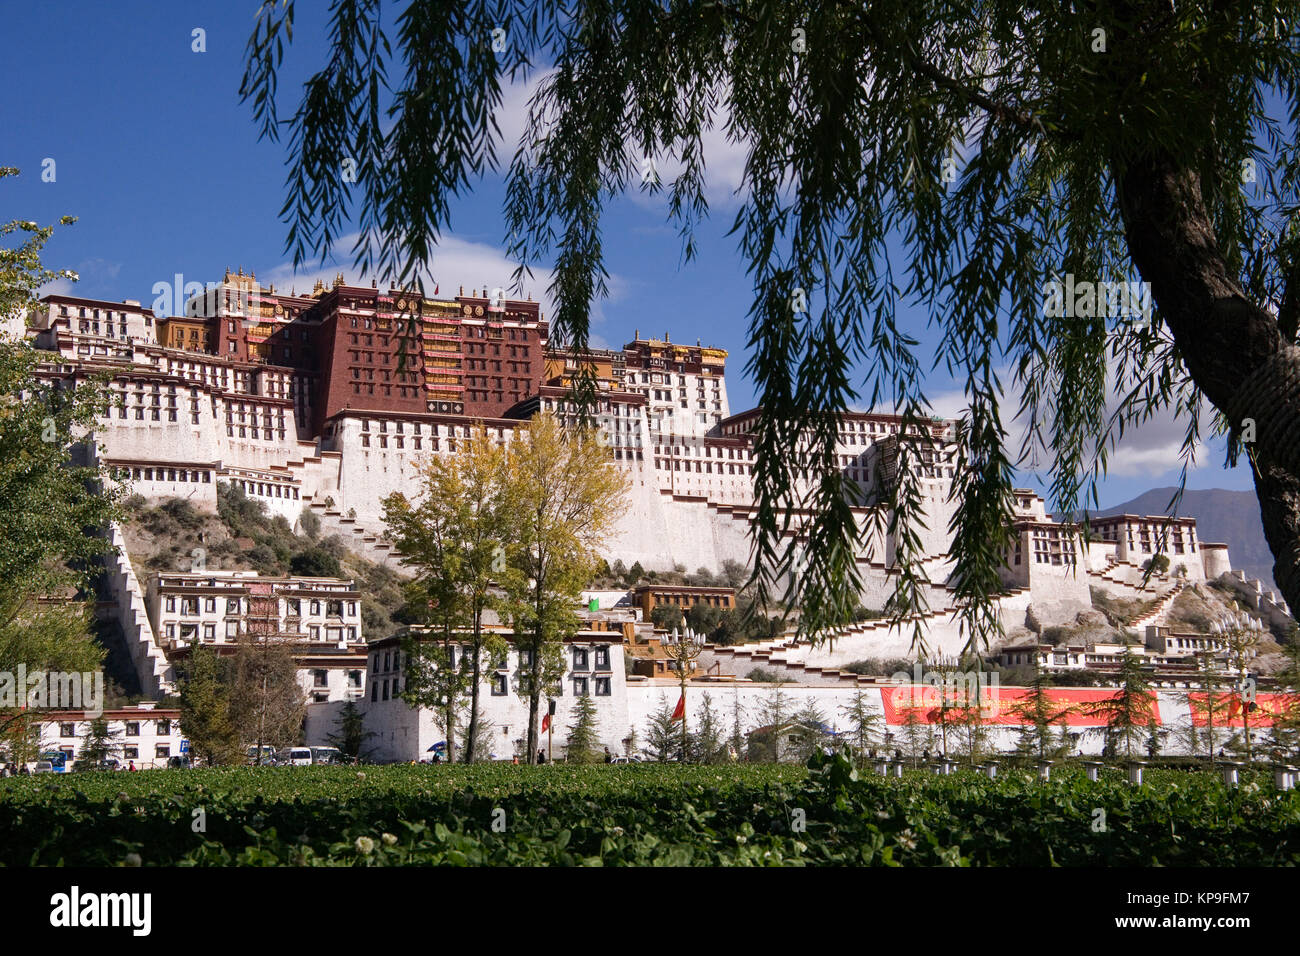 The Potala Palace in the city of Lhasa in Tibet, People's Republic of China. - Stock Image